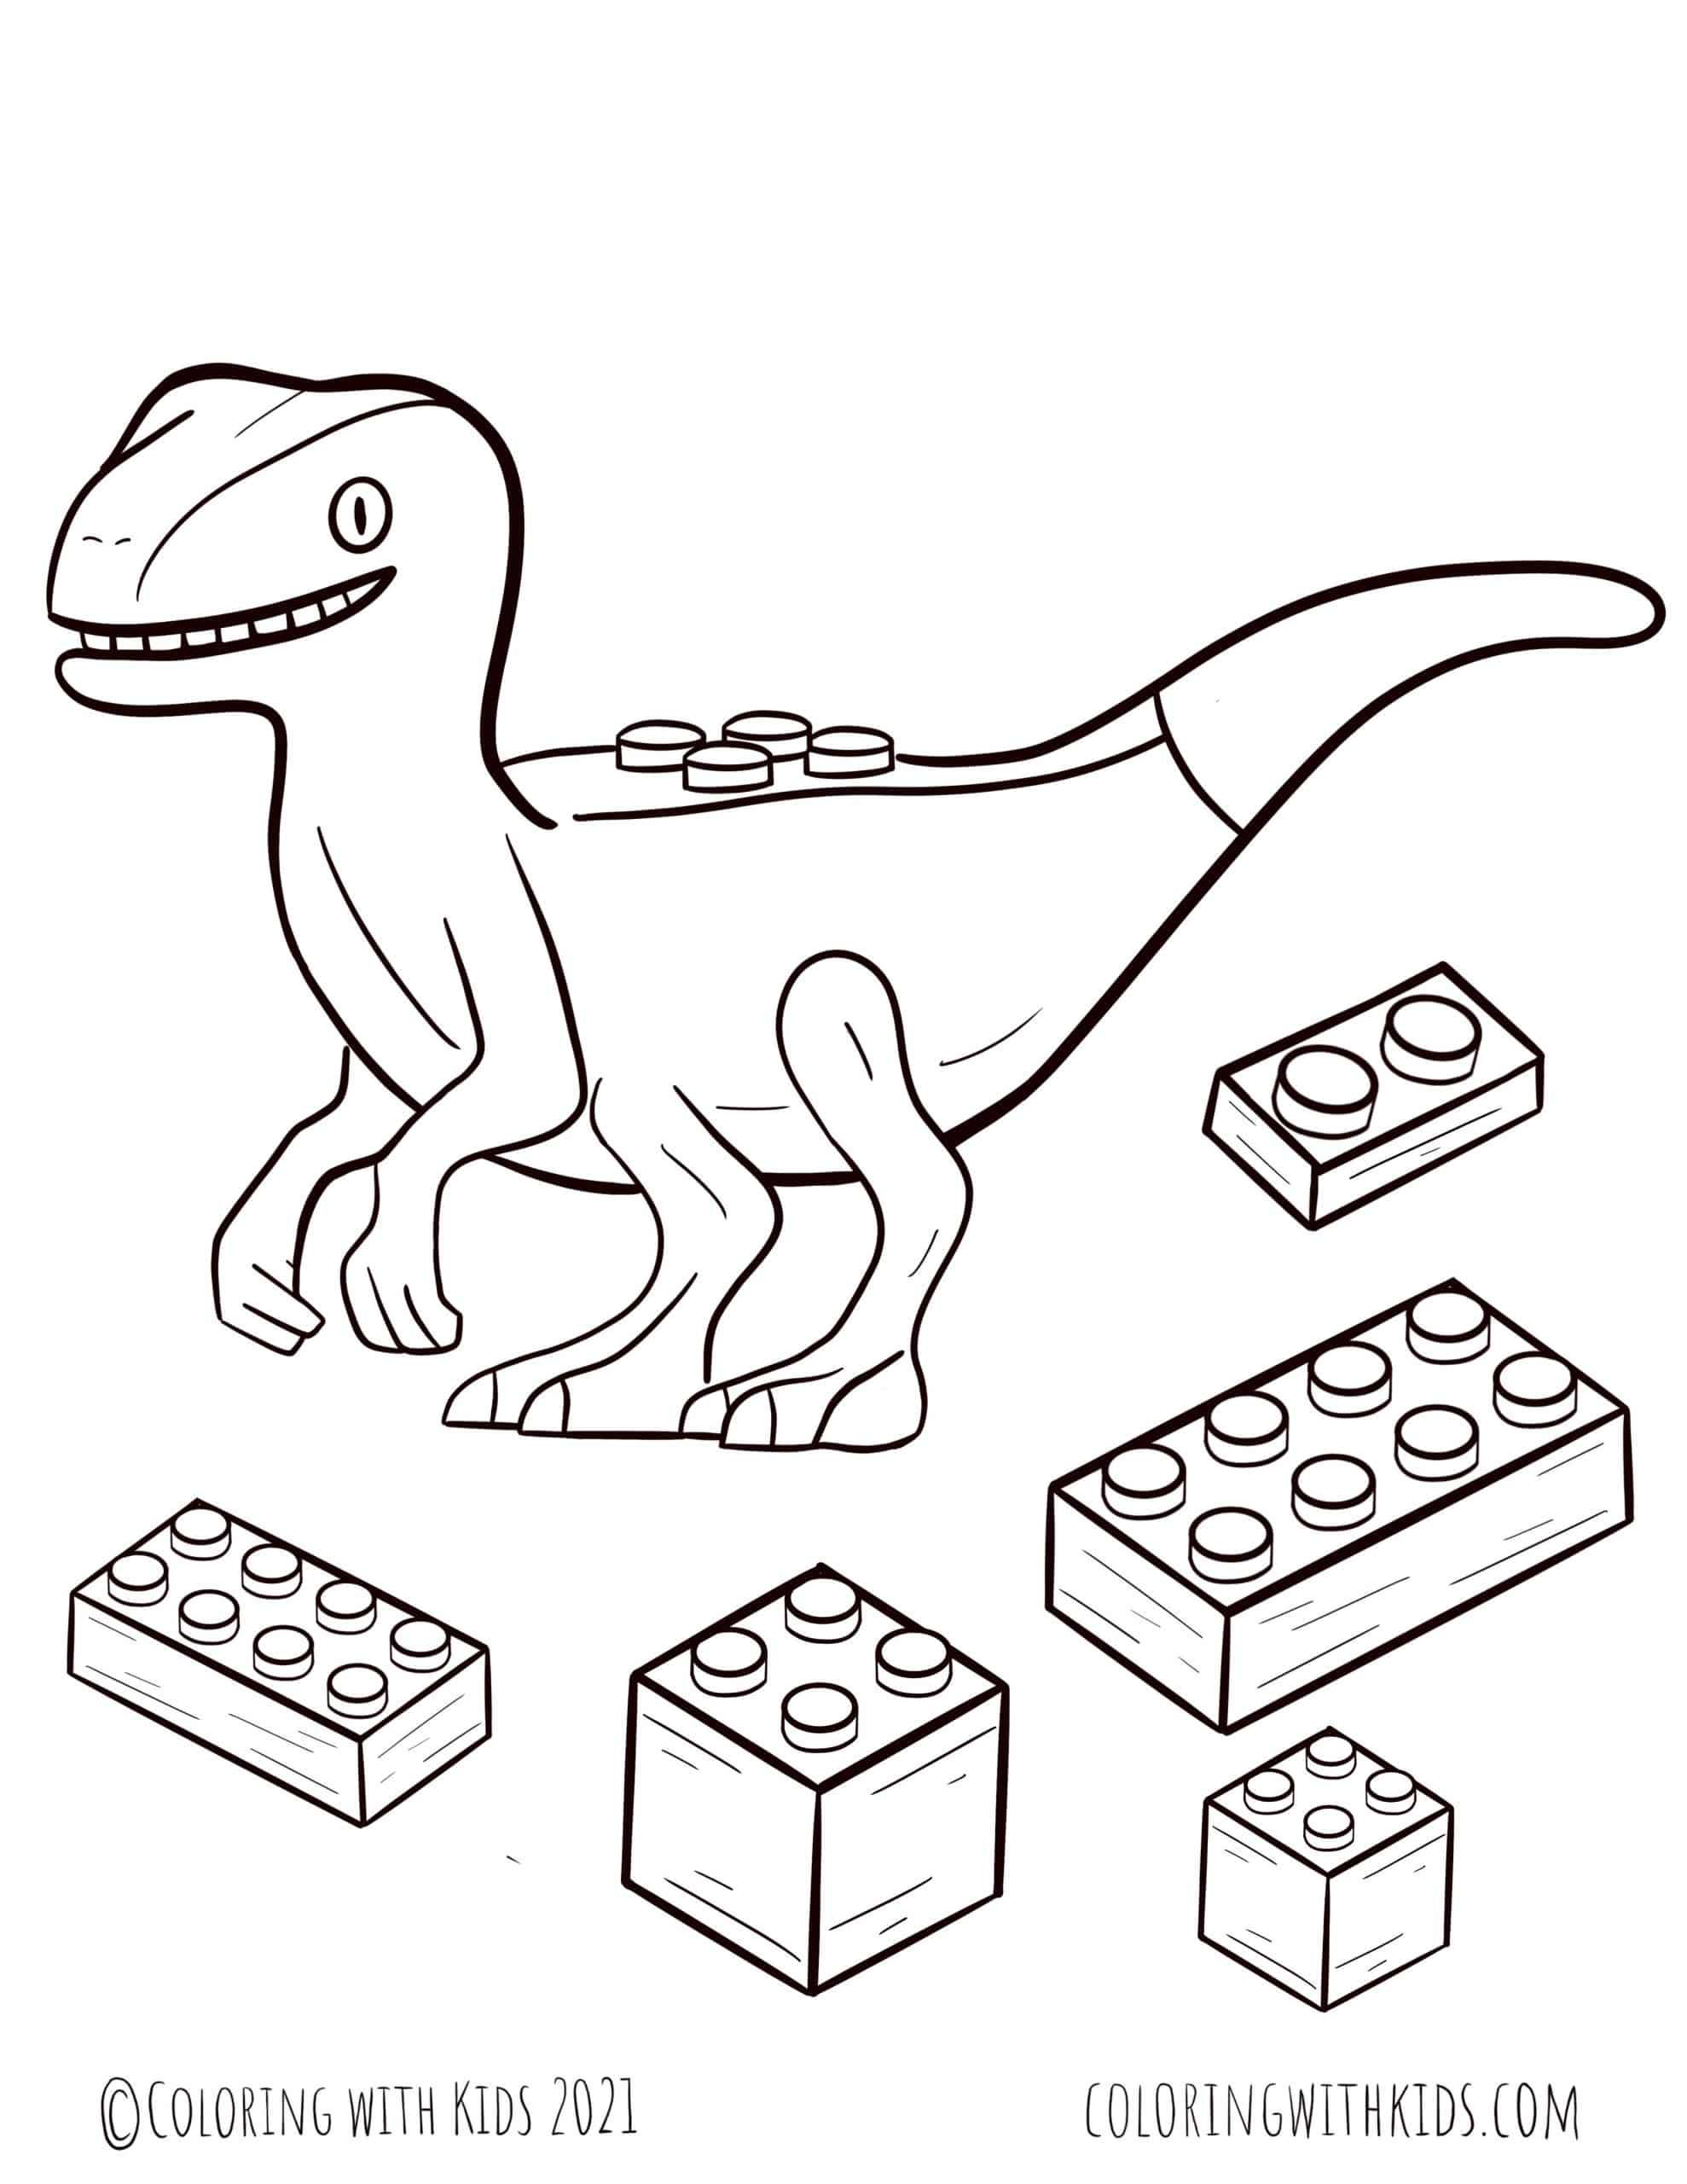 Dinosaurs Coloring Pages Coloring